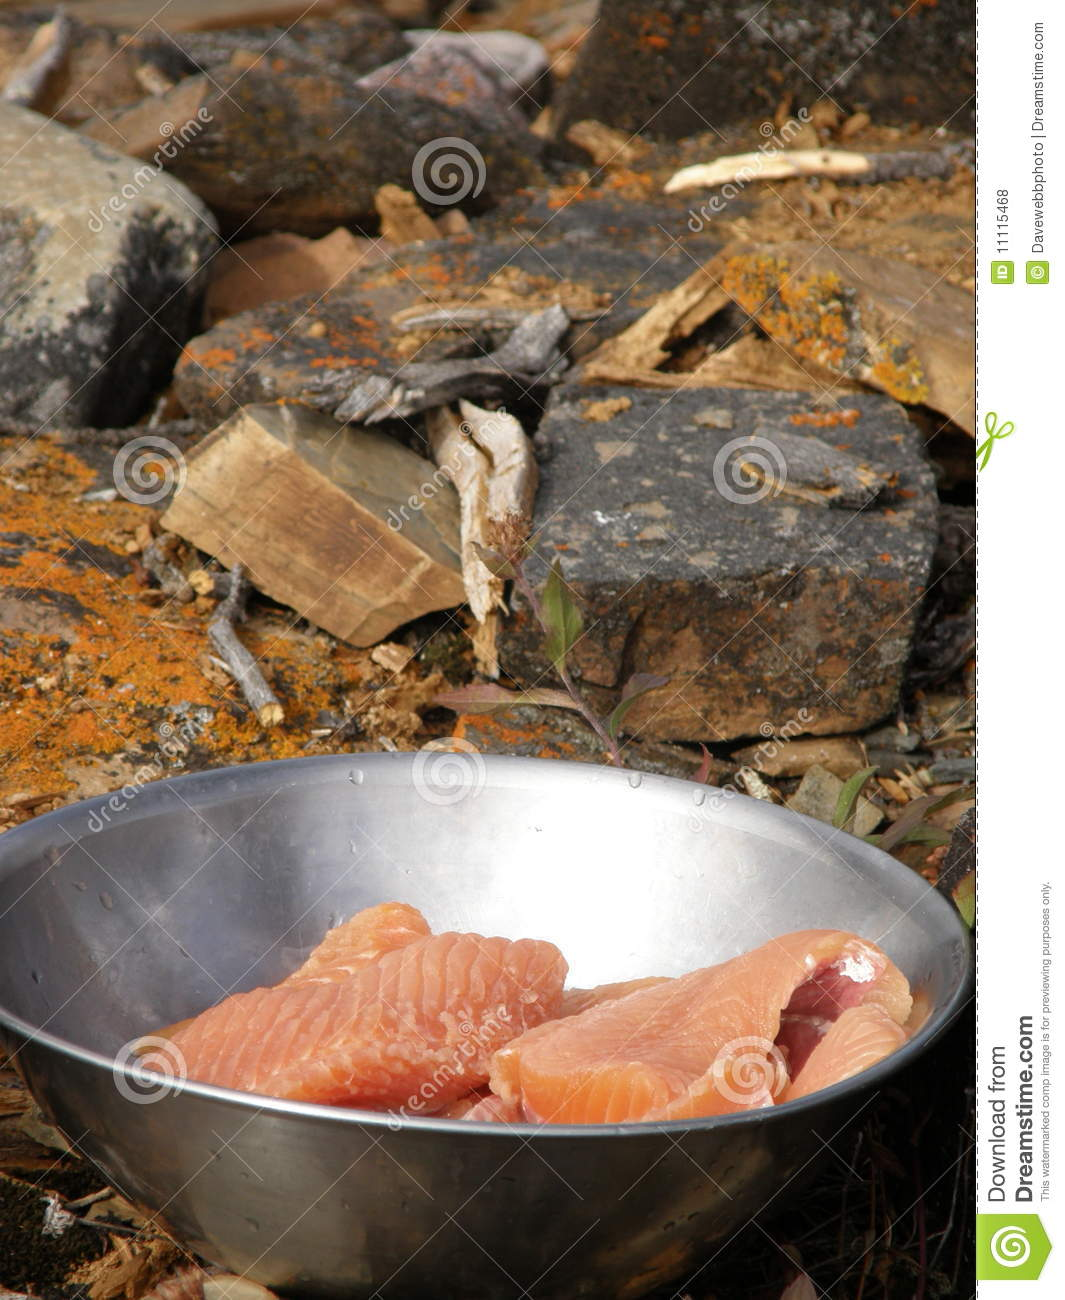 how to cook lake trout fillets